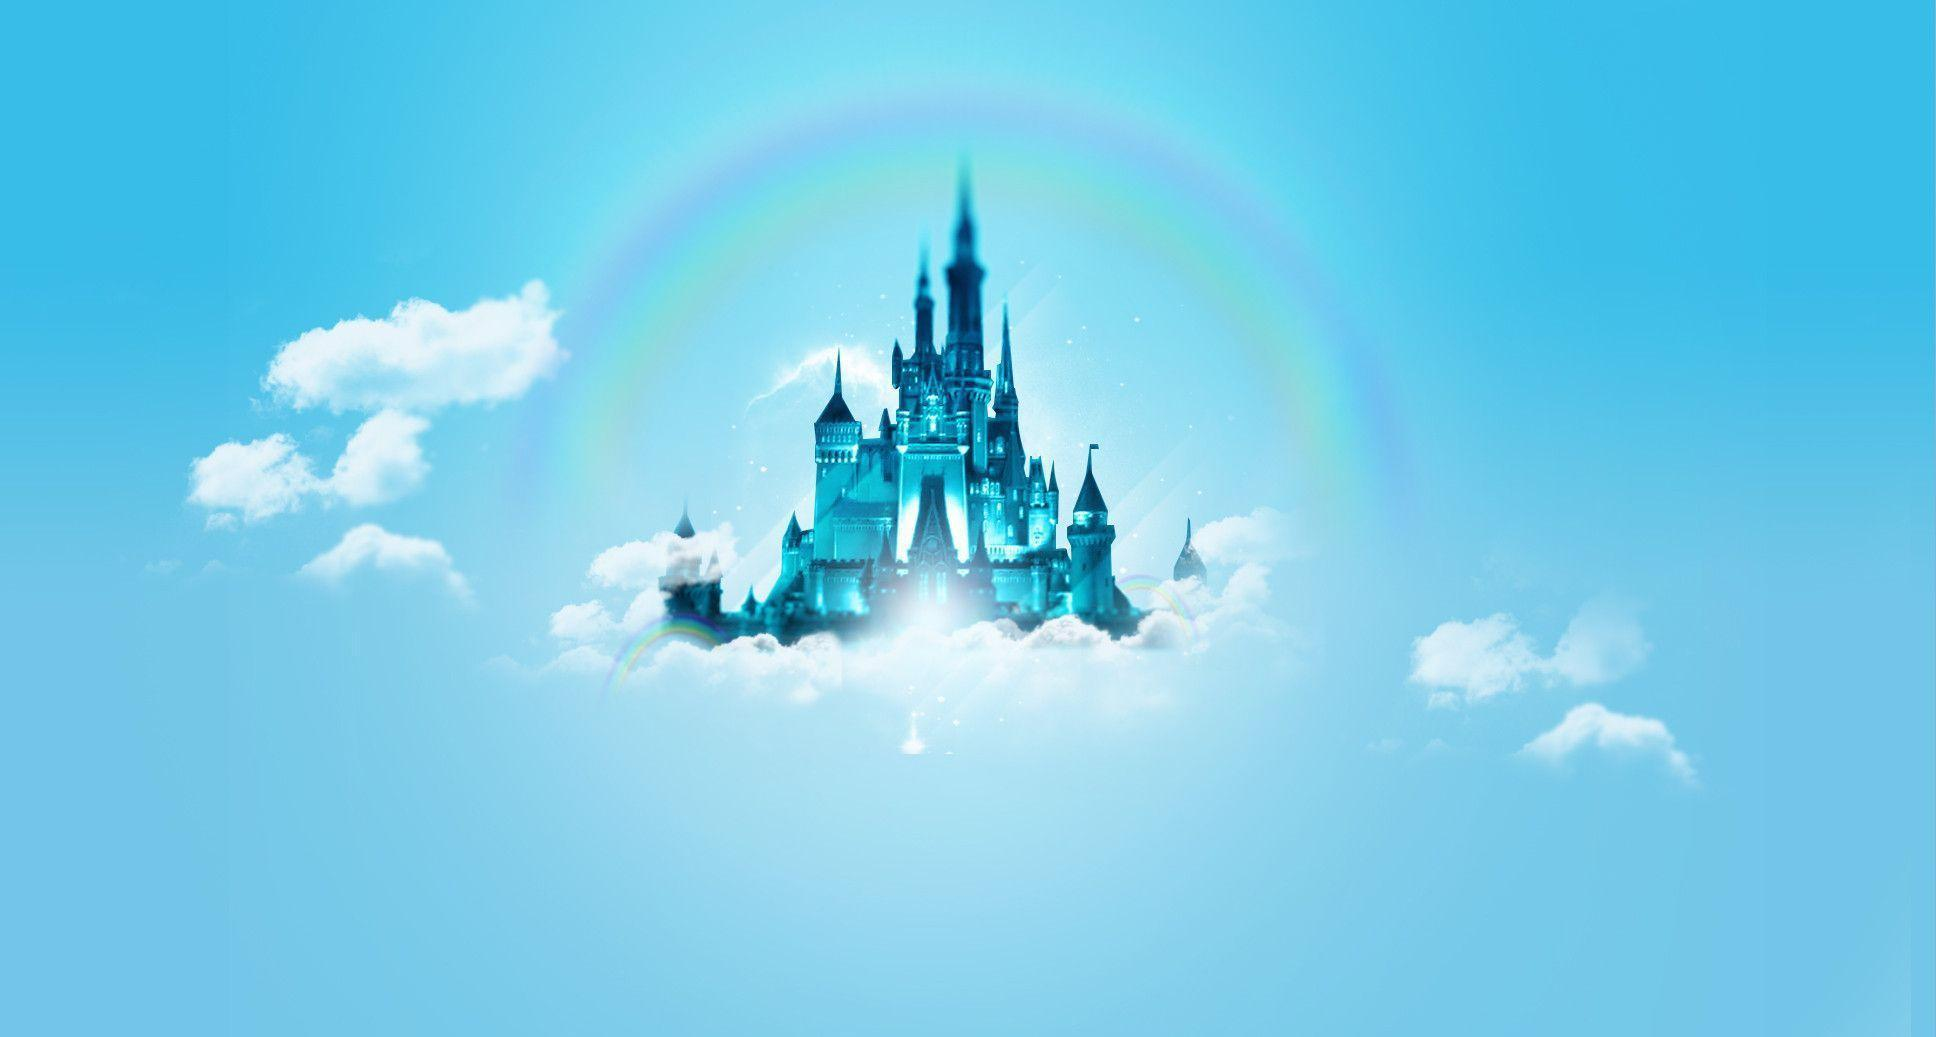 disney 3d hd wallpapers 1080p - photo #28